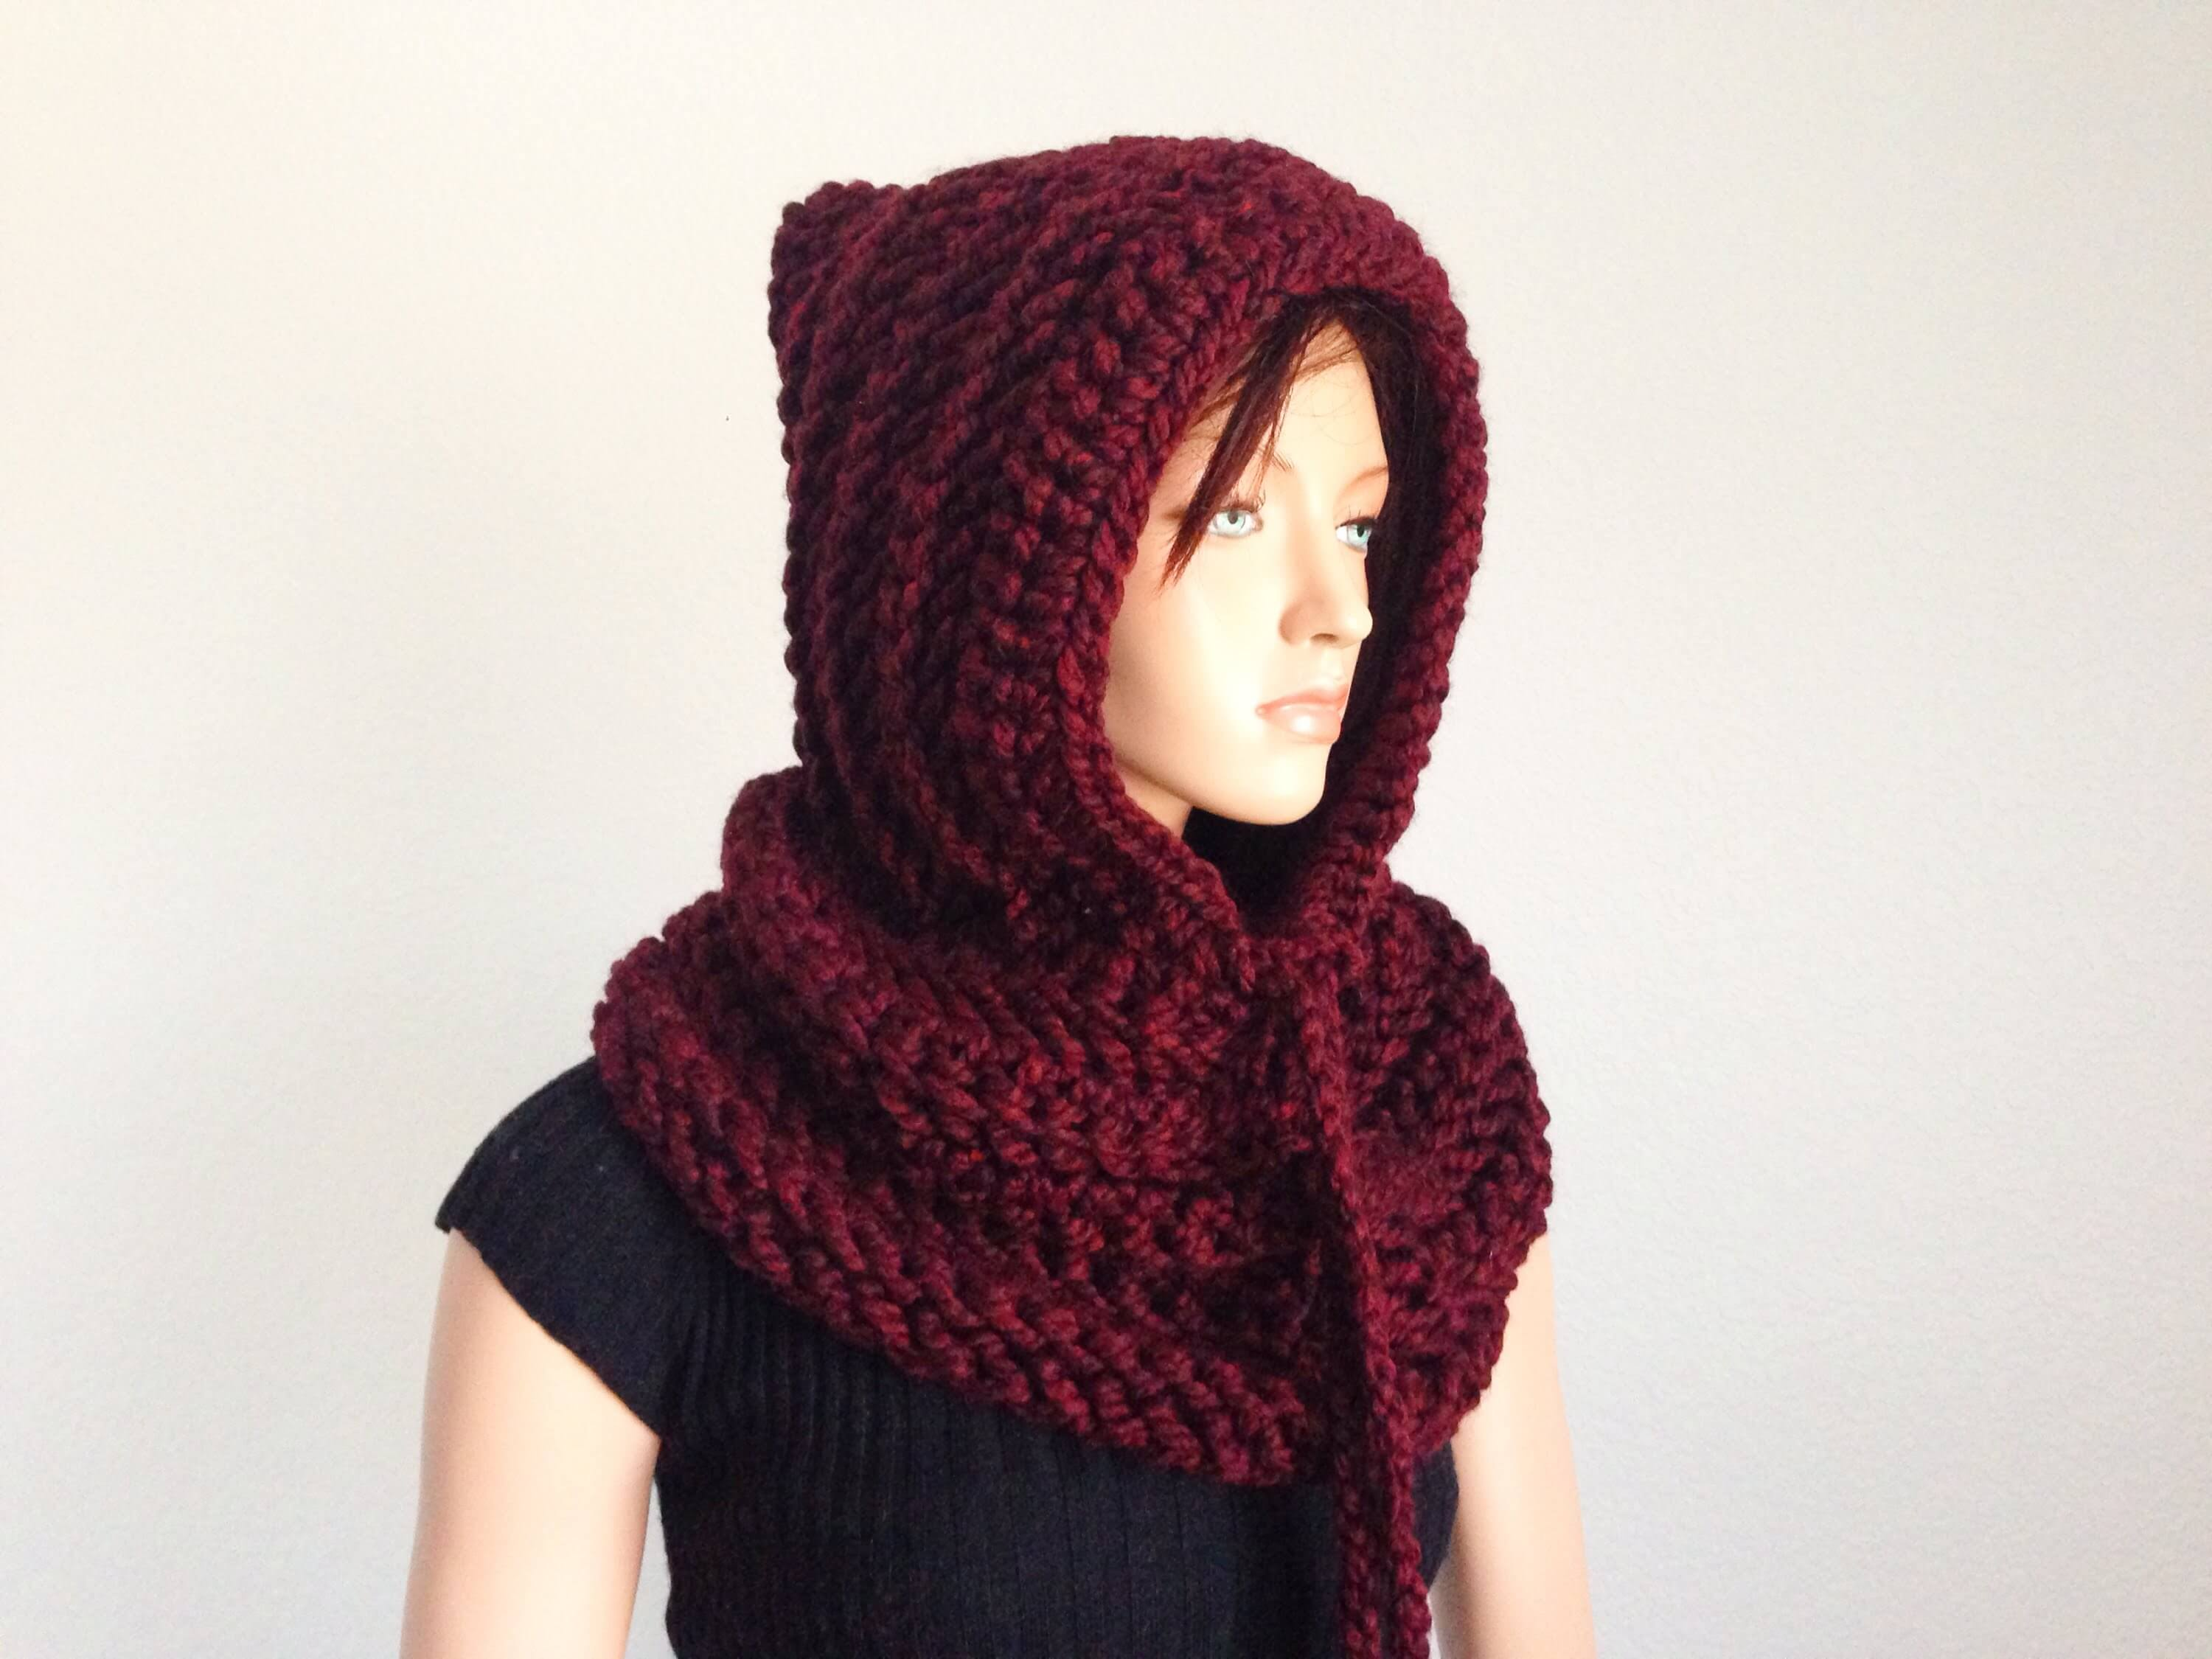 Free Knitting Pattern Hooded Neck Warmer : Crochet a Hooded Neckwarmer or Snood - The Spinners Husband